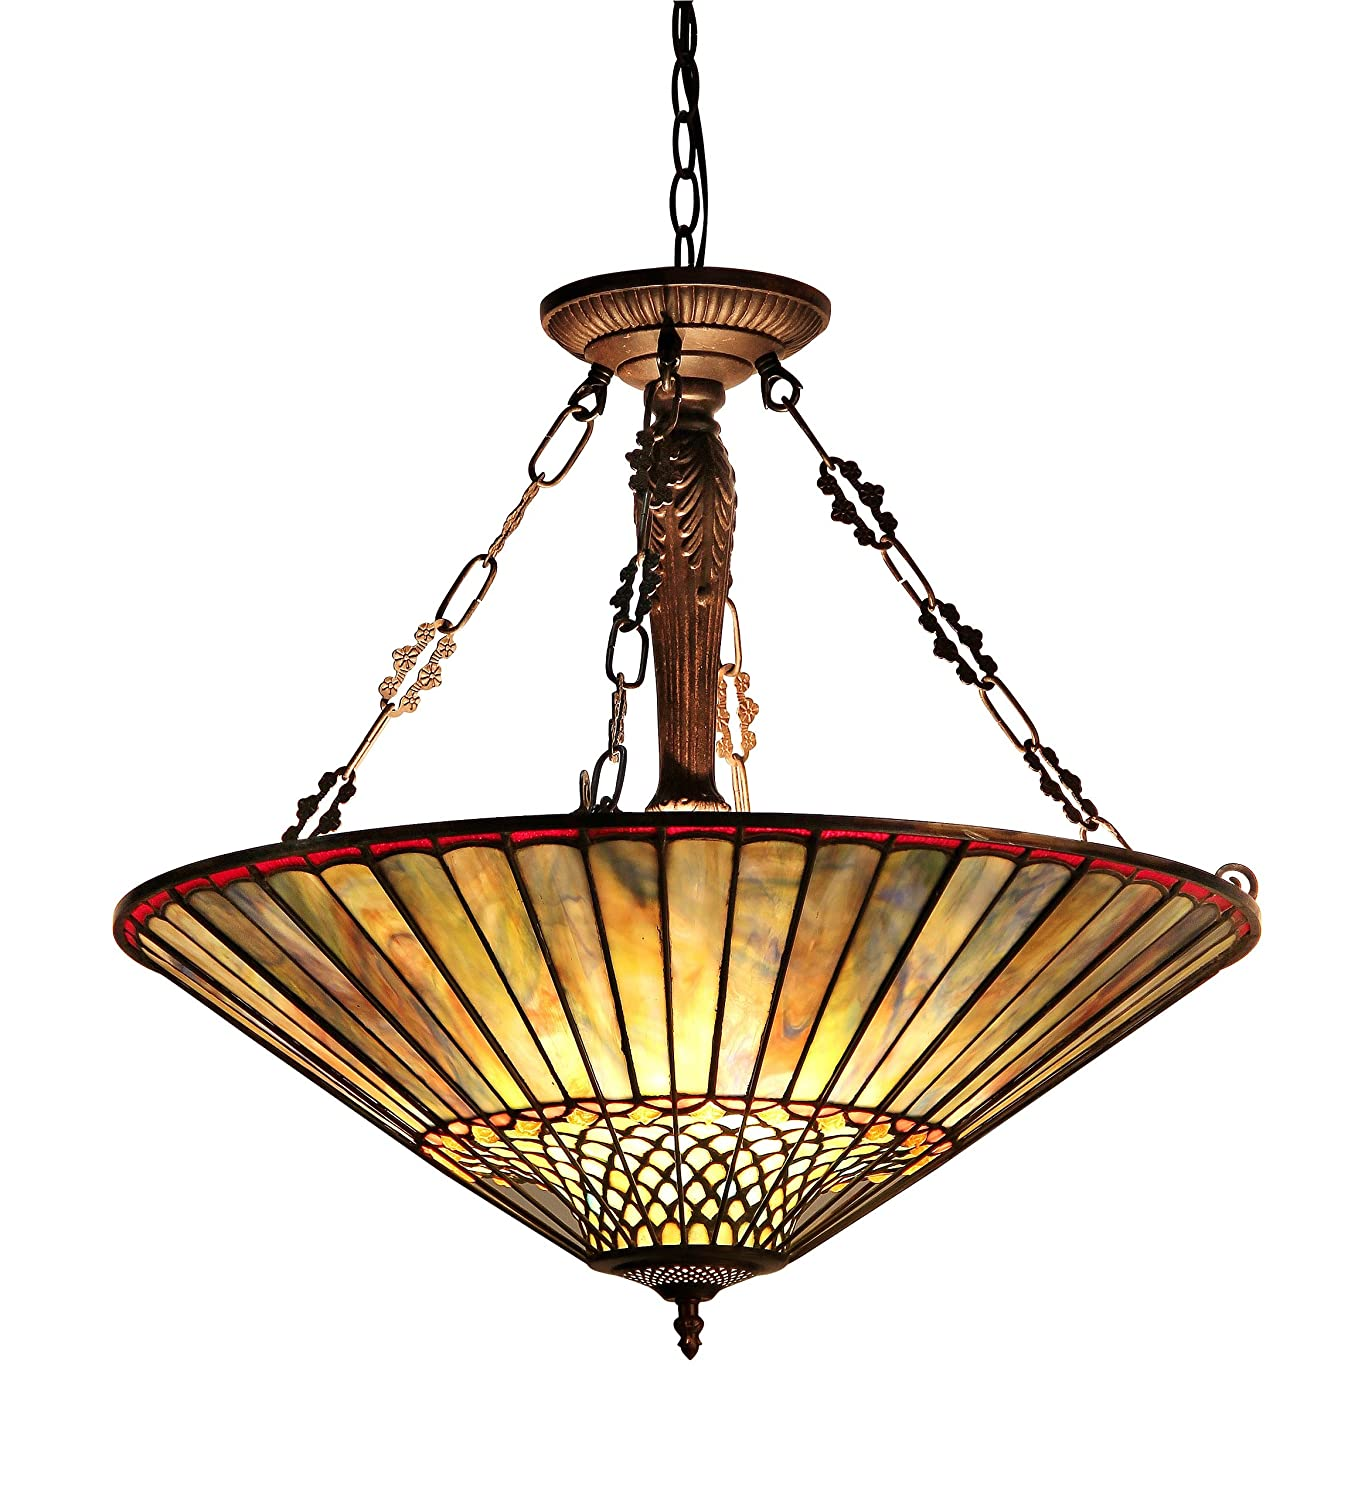 kitchen gas on tiffany san alhambreieriers lights cheap restaurants inverted craftsman antique lamp top lighting hanging awesome for archived vintage diego images style pendant